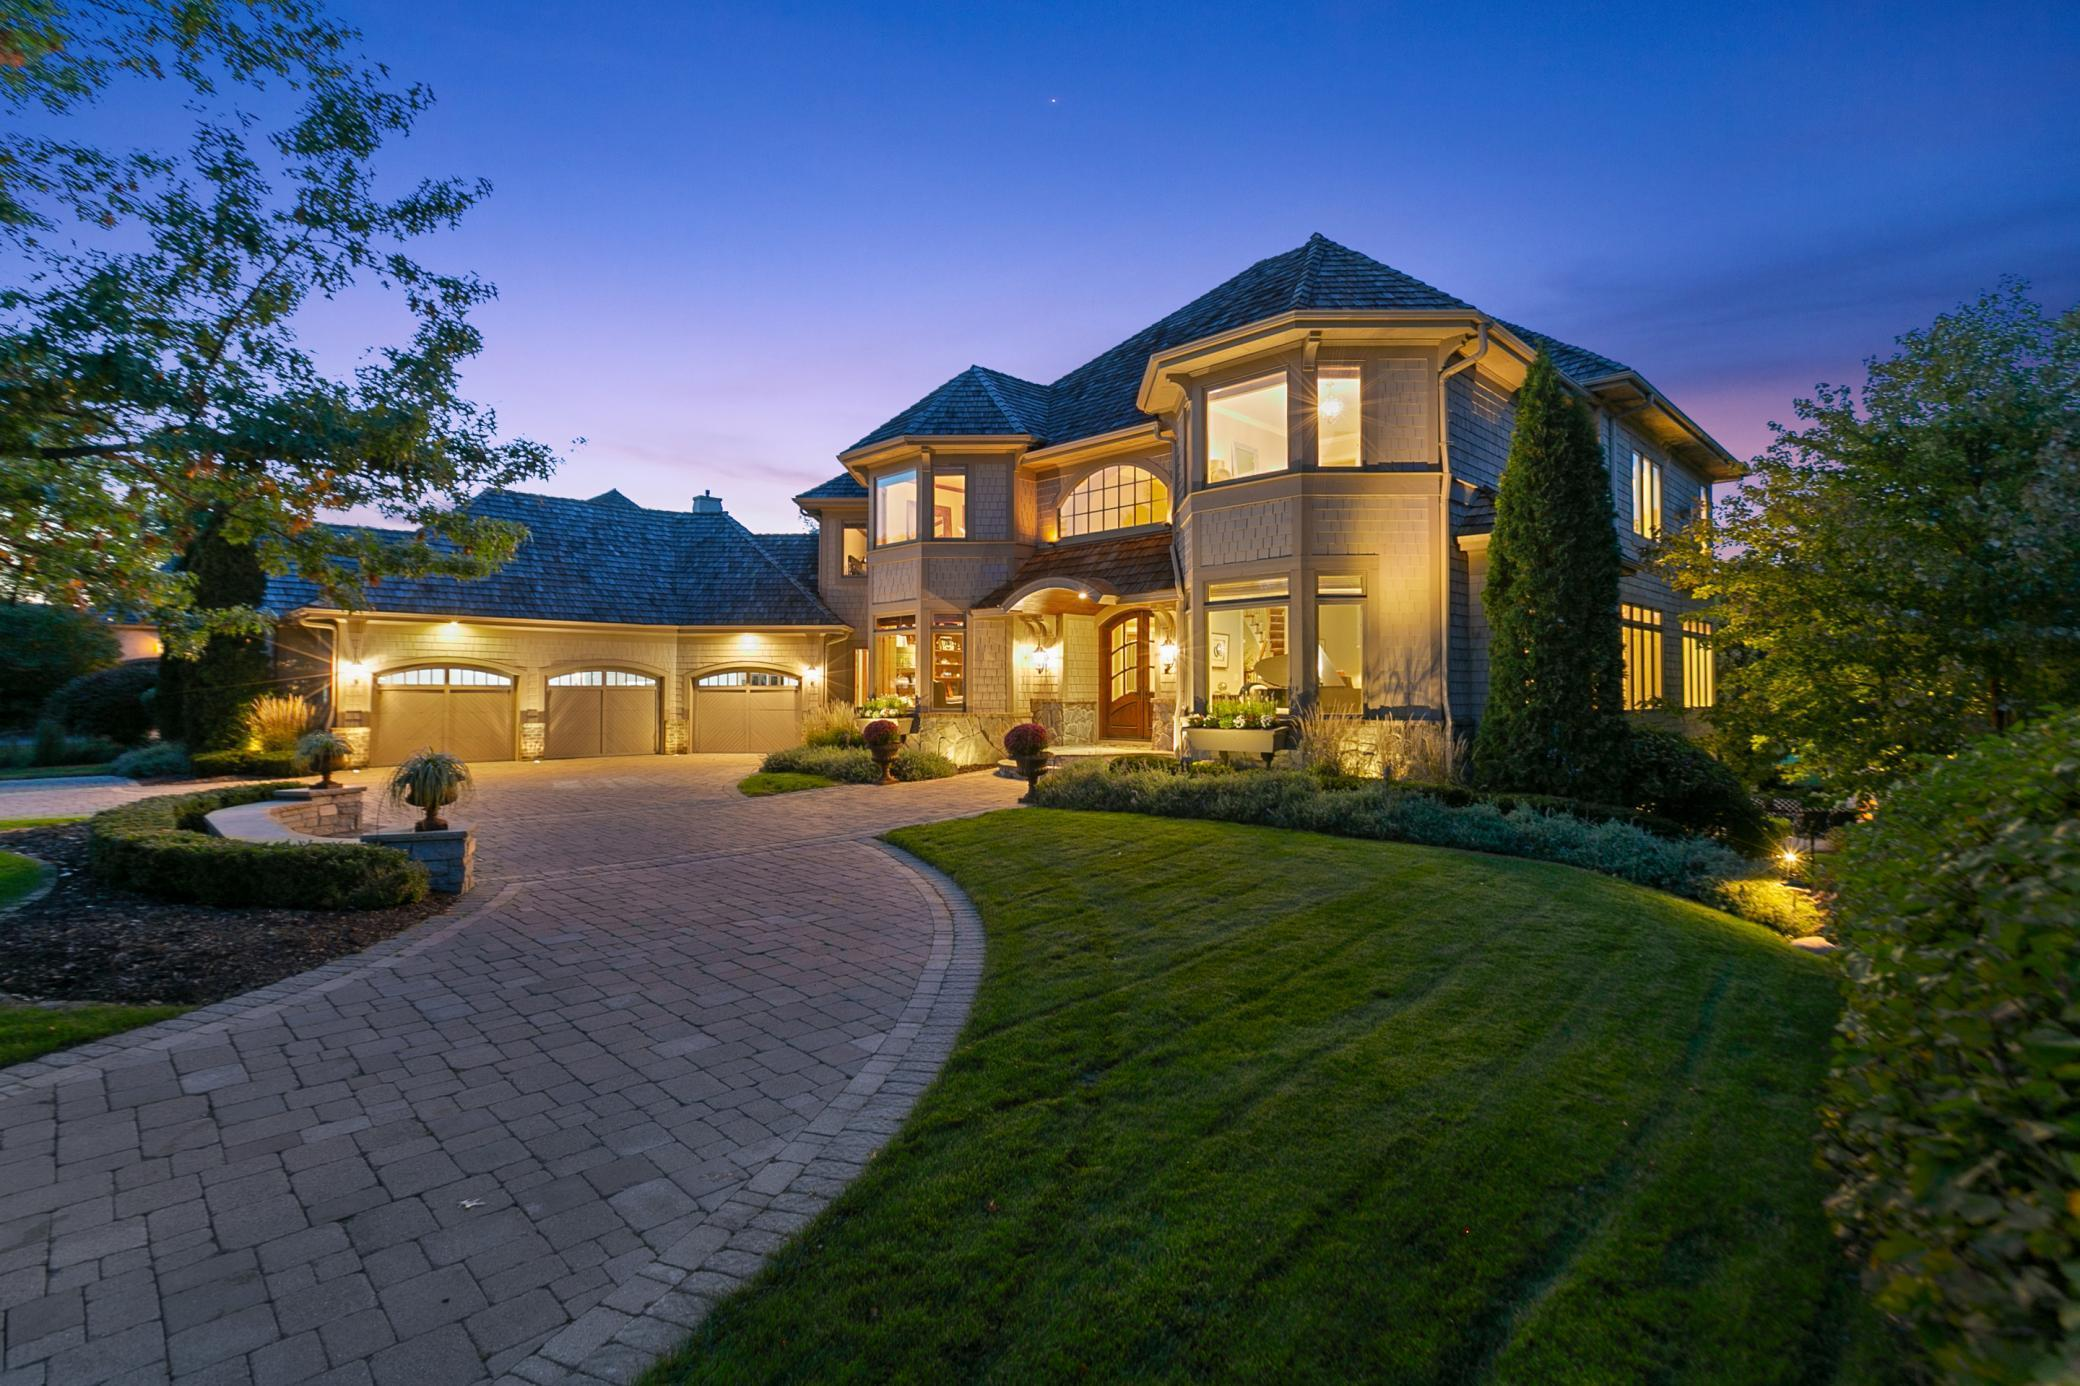 18298 Nicklaus Way Property Photo - Eden Prairie, MN real estate listing